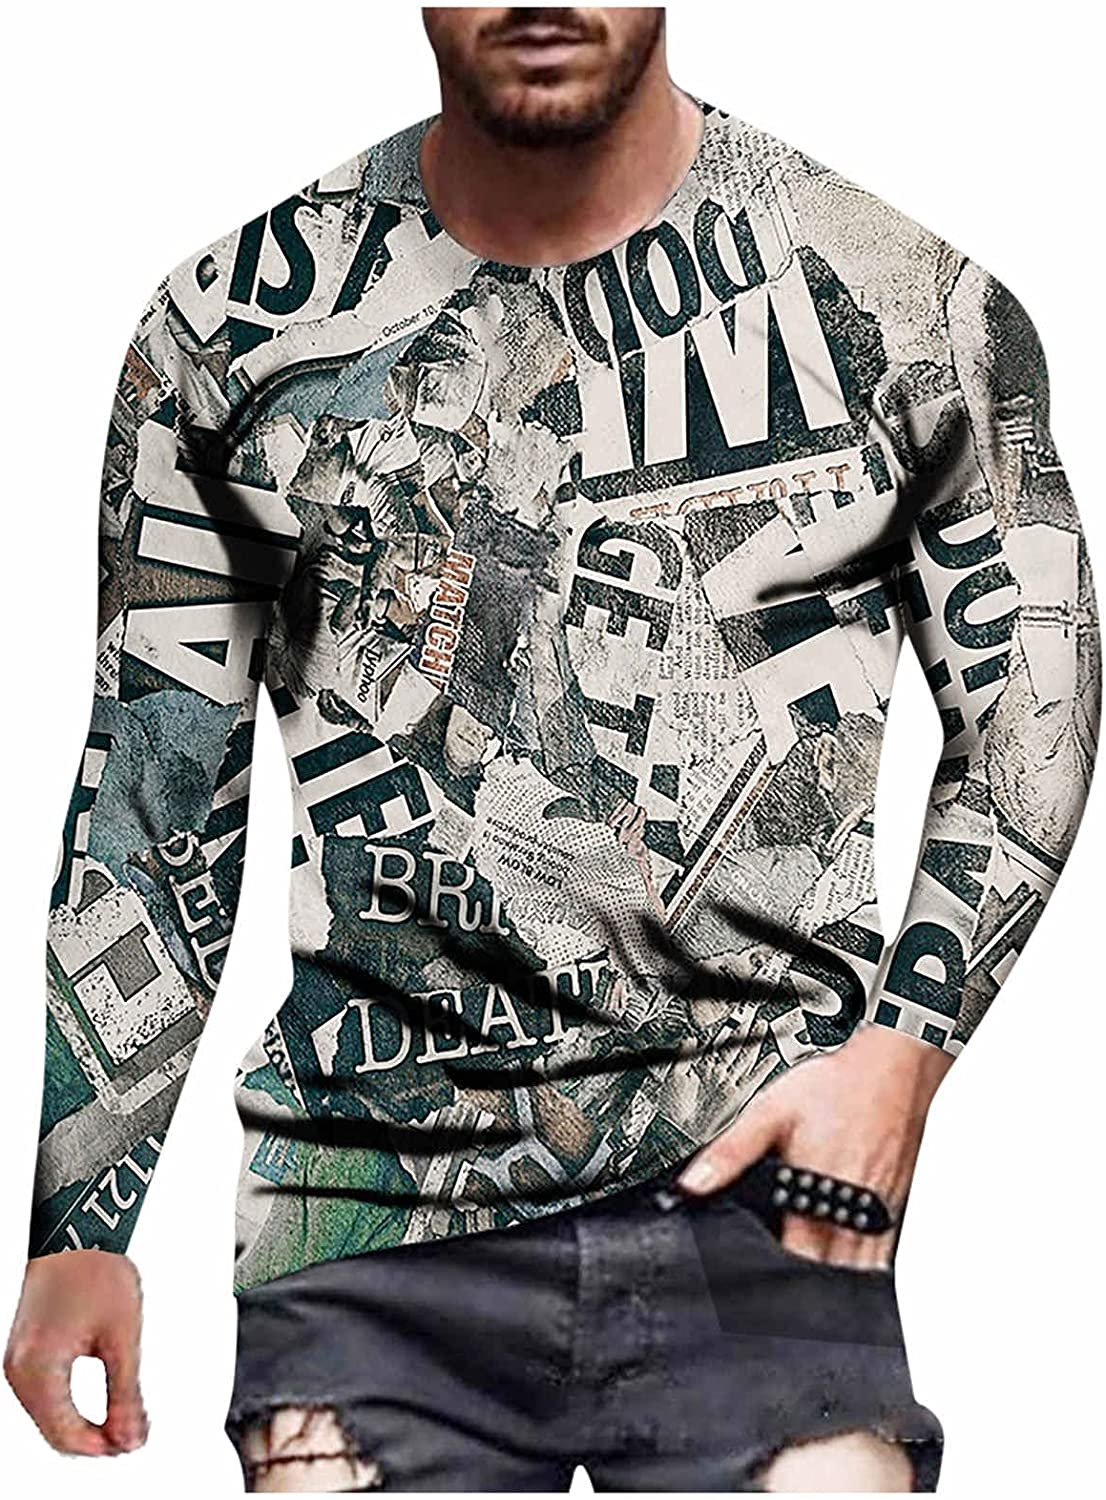 FORUU Men's Long Sleeve Shirts 2021,Casual Graphic Tees Fashion Cross Print Tops Round Neck Pullover Funny Tee Shirt